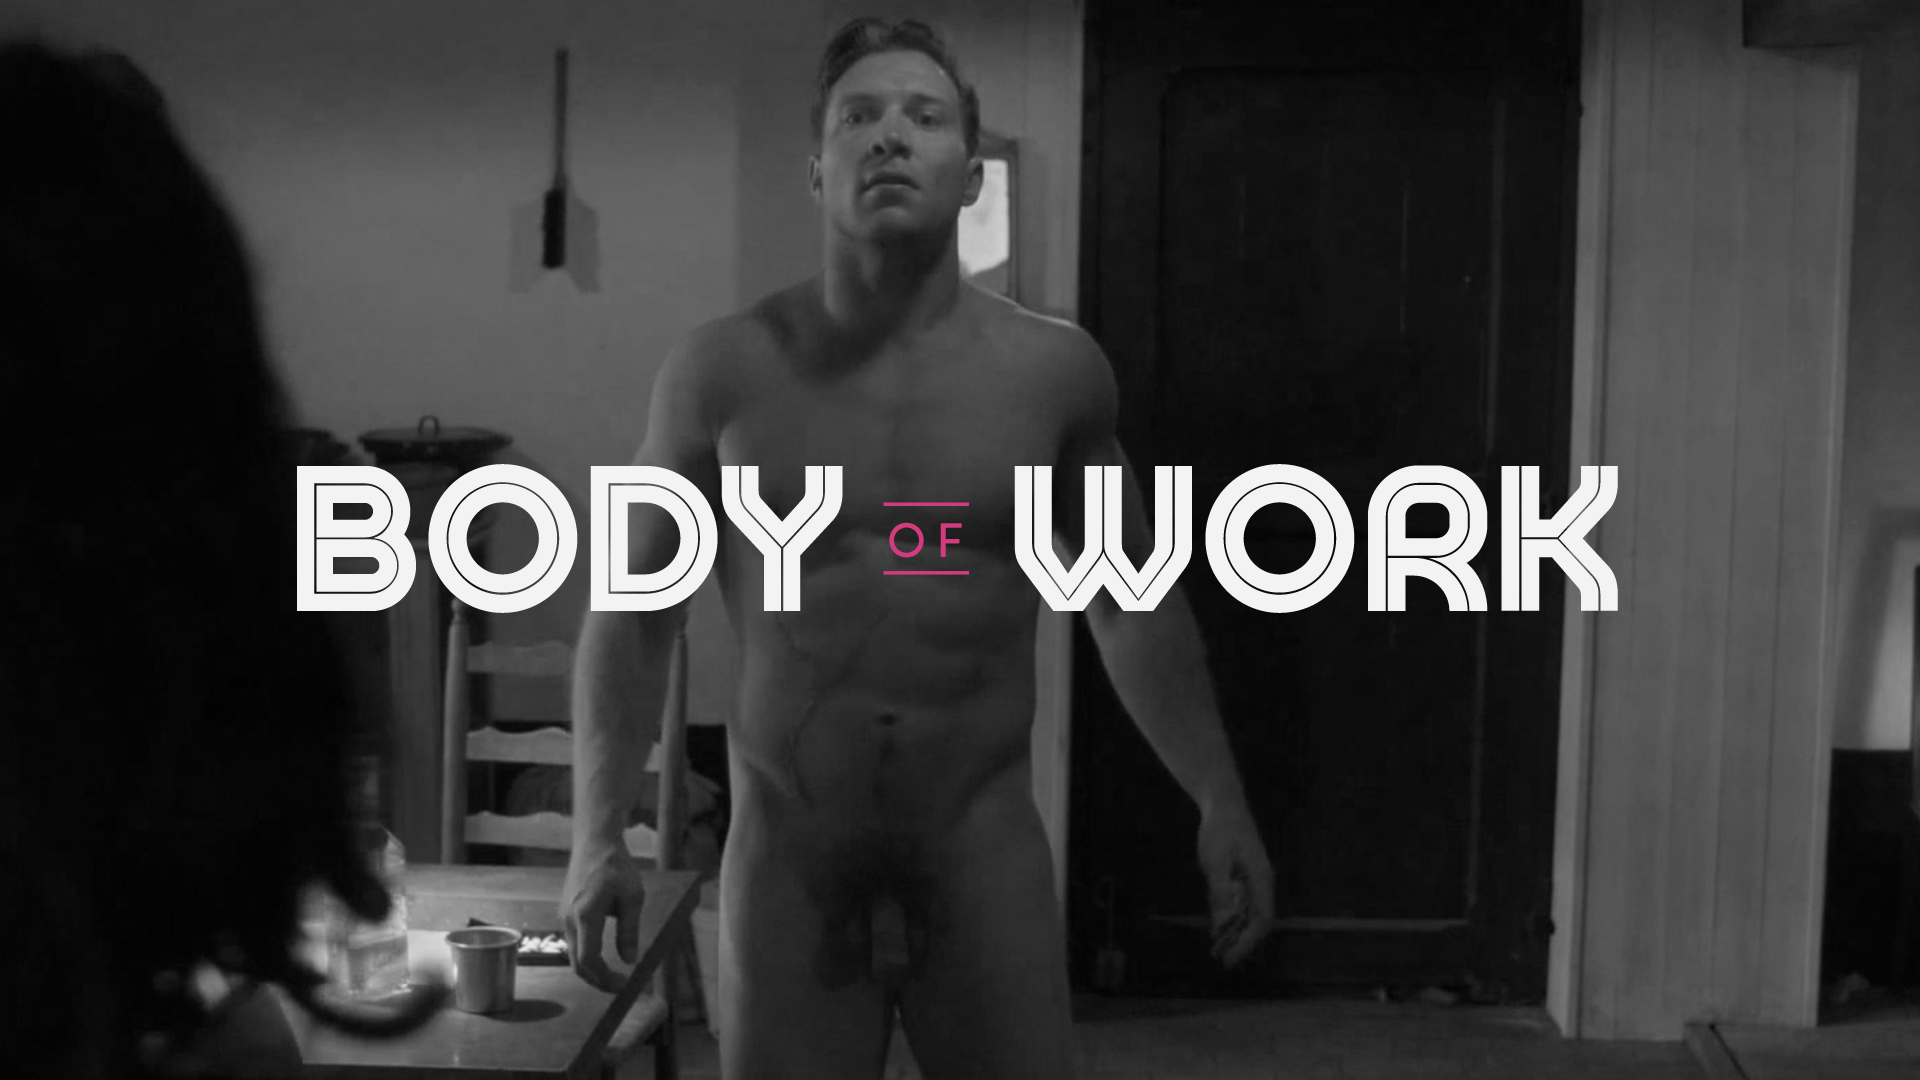 Bodyofwork jaicourtney 00 00 04 06 still003 nude preview image